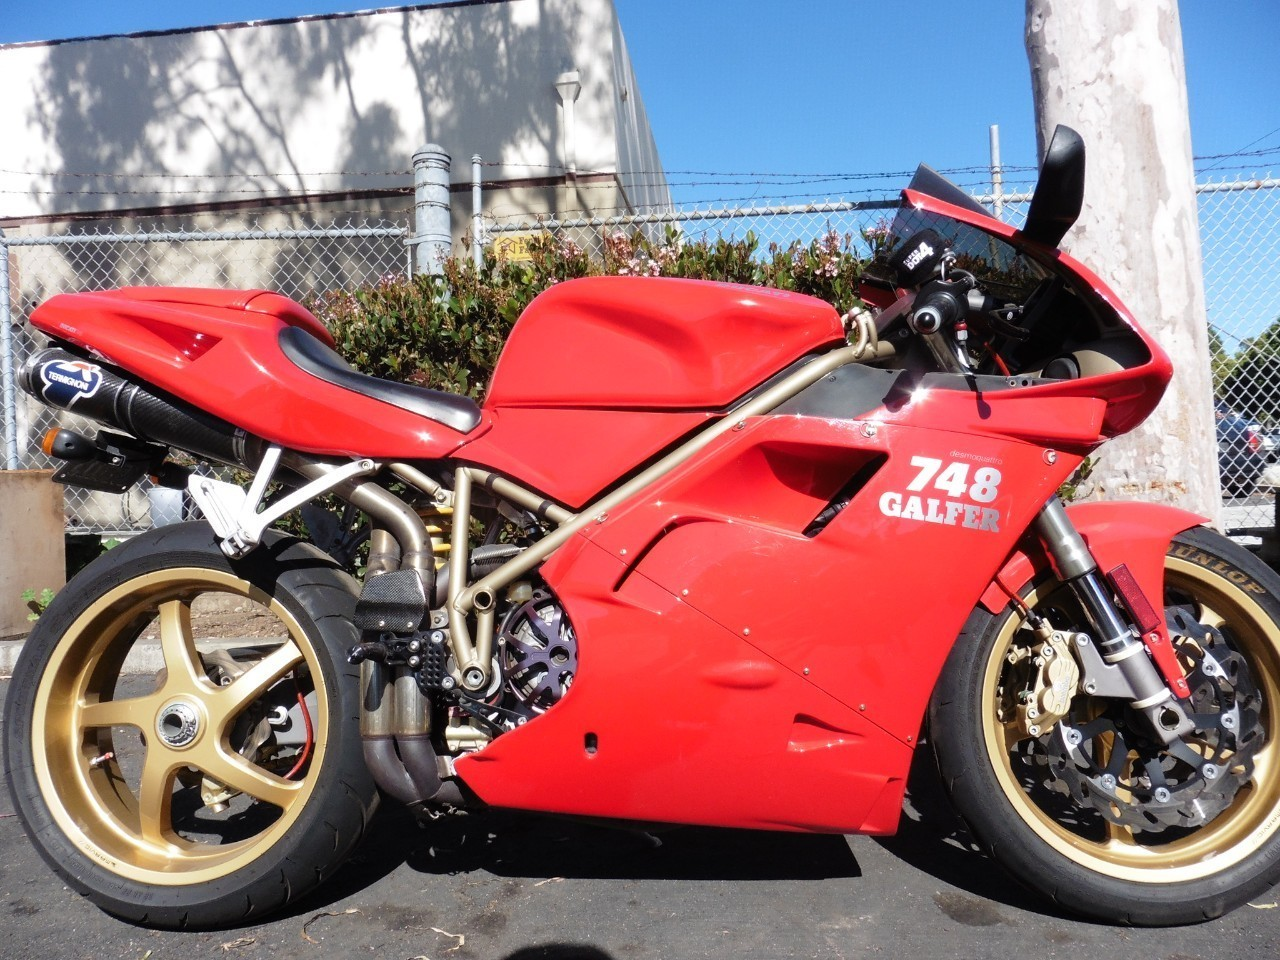 1999 Ducati 748 BIPOSTO 748 BIPOSTA 33246 additionally Carbon Fiber Tank Pad For Aprilia Tuono V4r additionally Clutch Custom Motorcycles besides 2010 2014 Bmw S1000rr Exhaust Kit as well Motorcycle fairings. on triumph carbon fiber